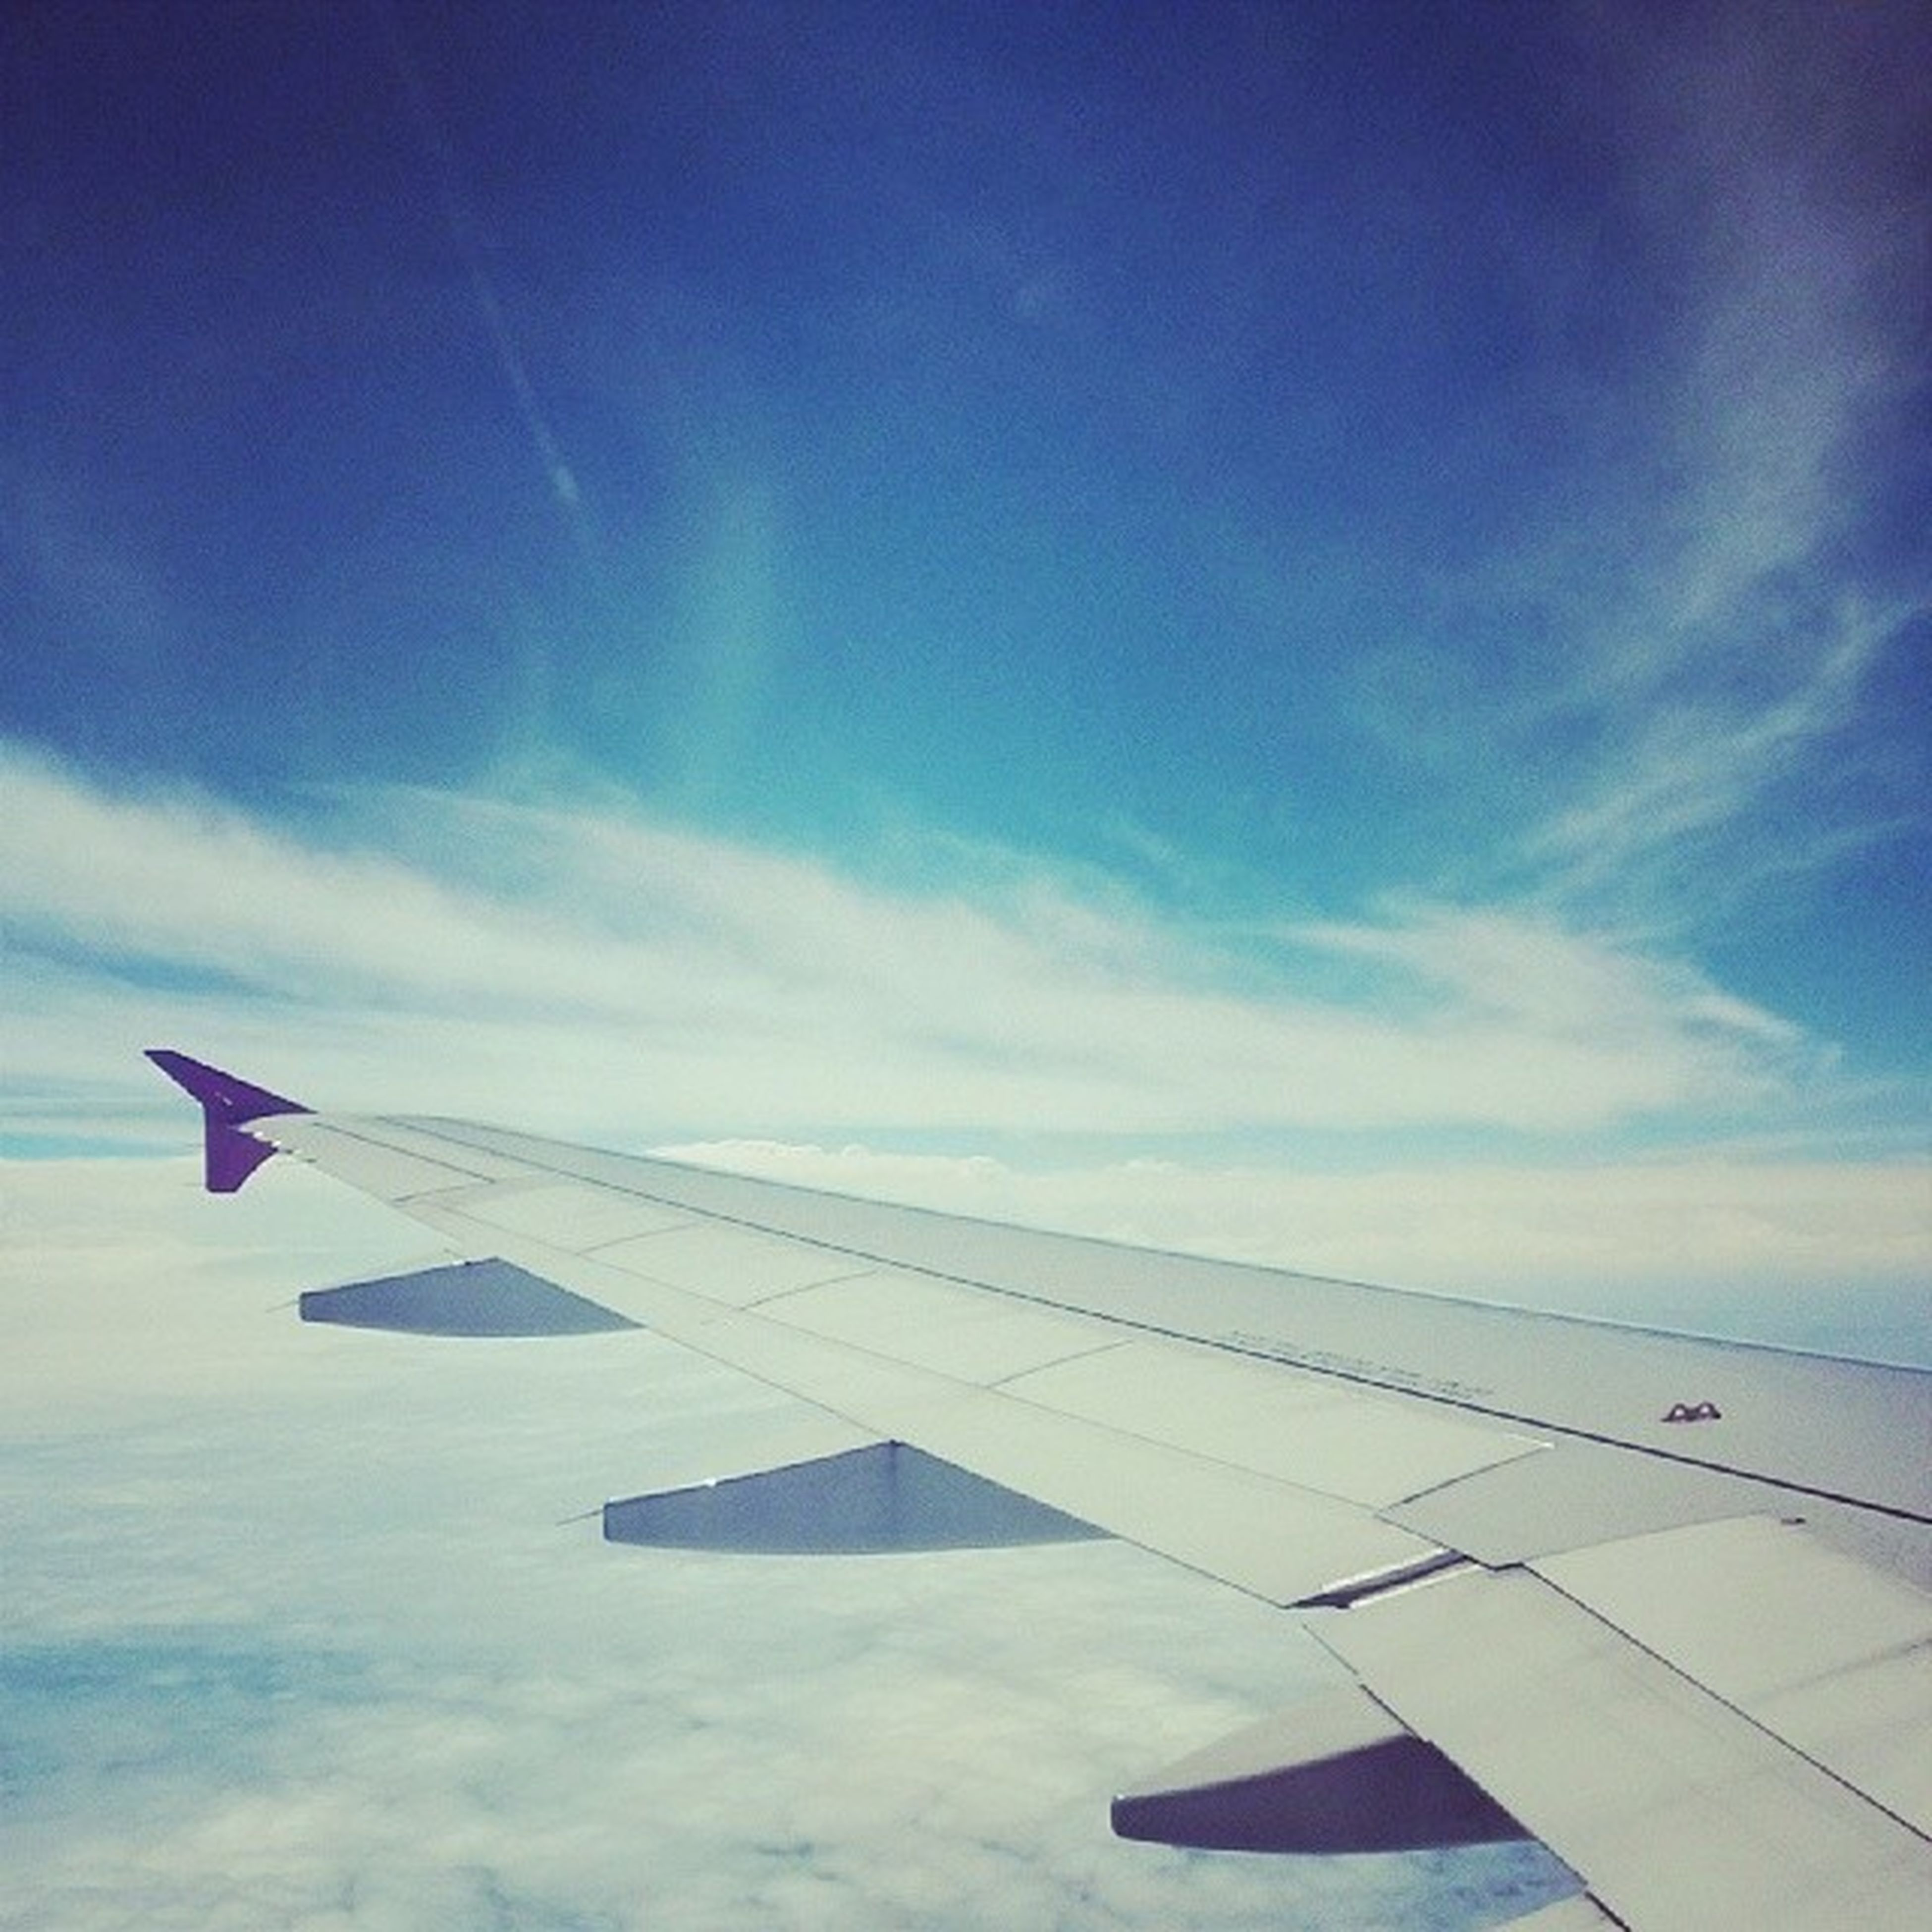 flying, airplane, air vehicle, aircraft wing, transportation, mode of transport, mid-air, sky, part of, blue, cropped, travel, cloud - sky, journey, on the move, aerial view, public transportation, cloud, airplane wing, aeroplane